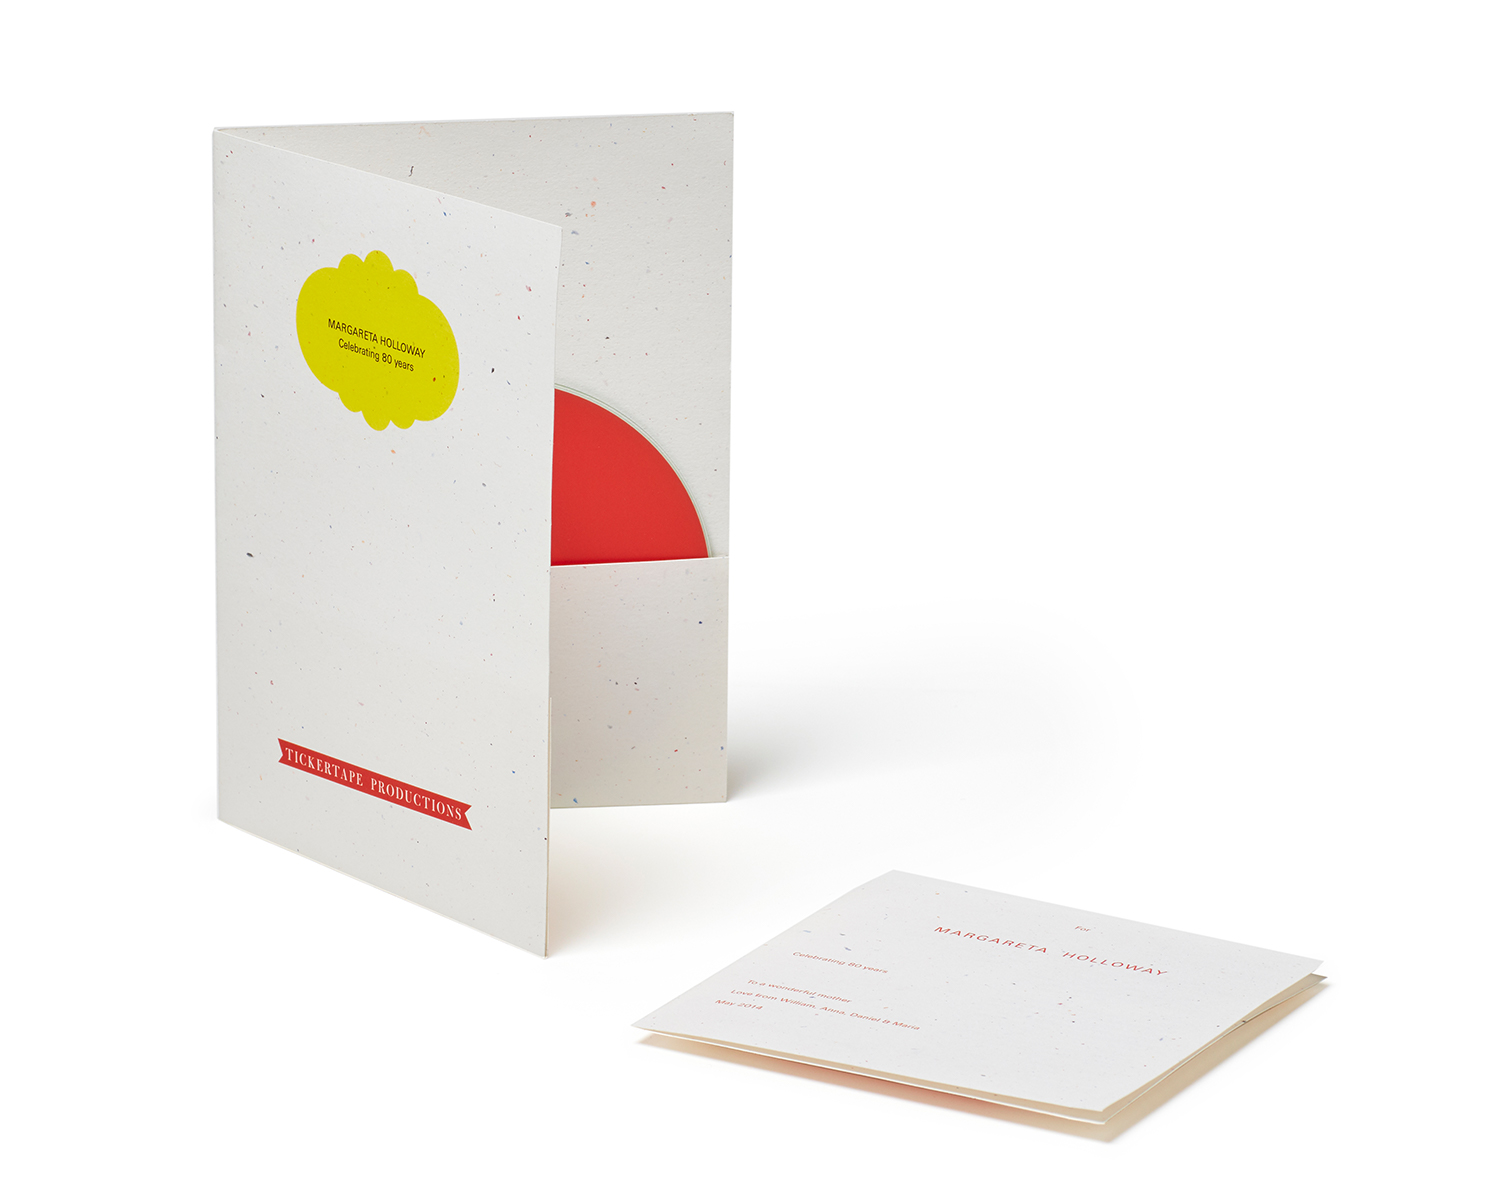 Presentation for copies of Spoken Portraits: paper folder and CD insert